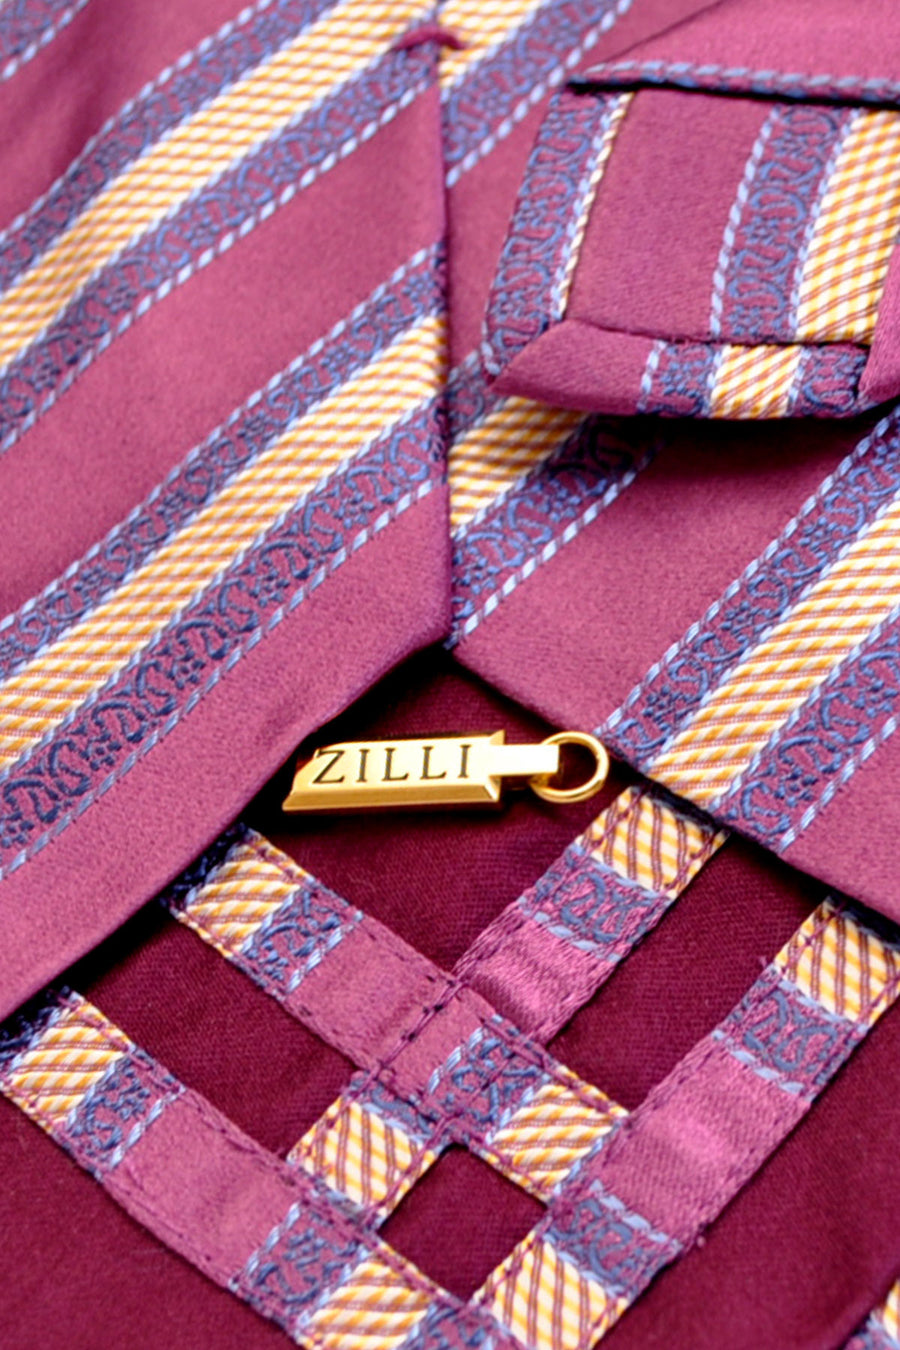 Zilli Tie Purple Gold Stripes - Wide Necktie